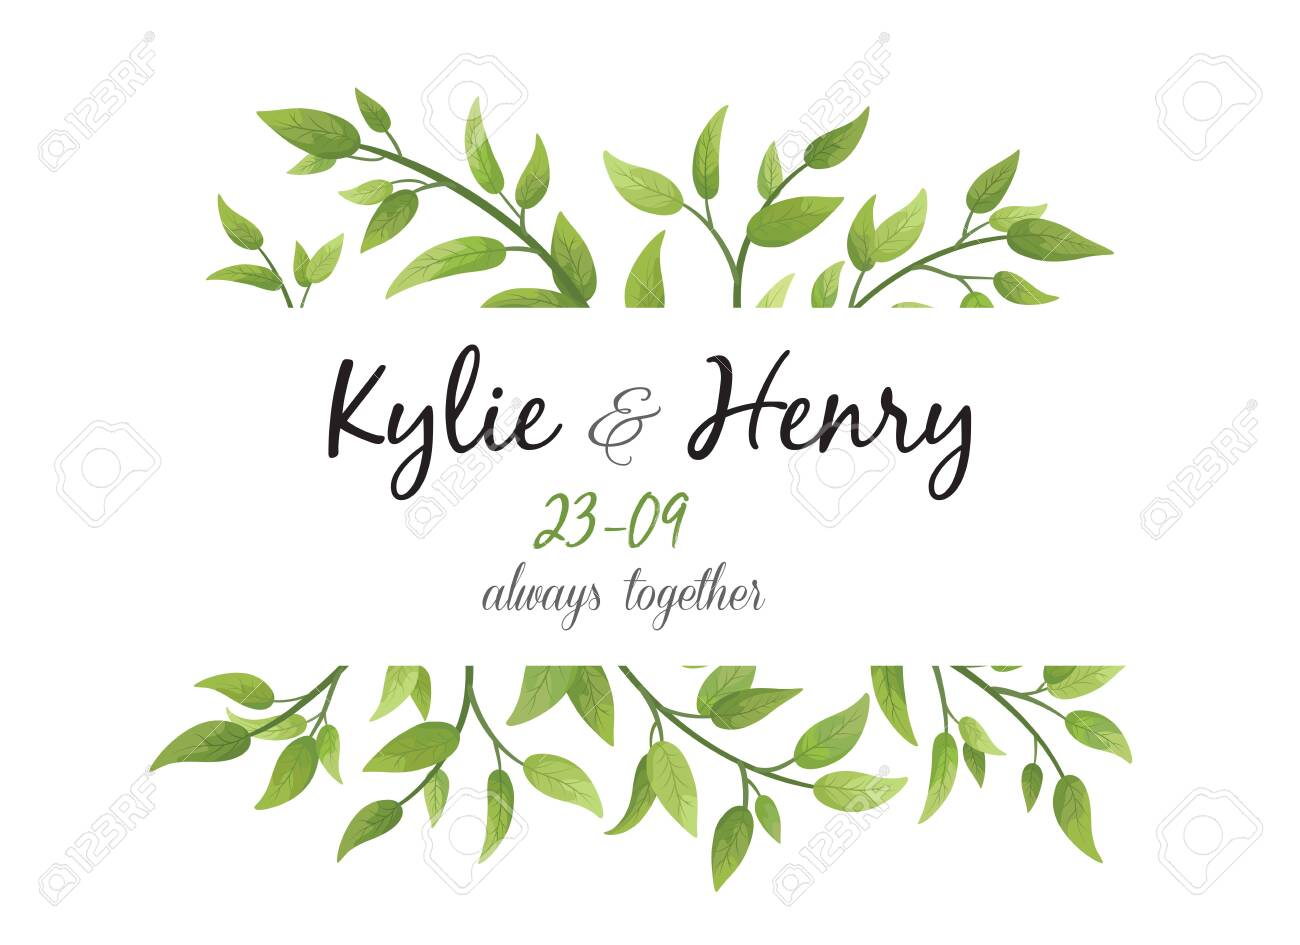 Wedding Invitation, save the date card floral Design with green watercolor fern leaves, foliage greenery decorative frame print. Vector elegant cute rustic greeting, invite, postcard - 151777883